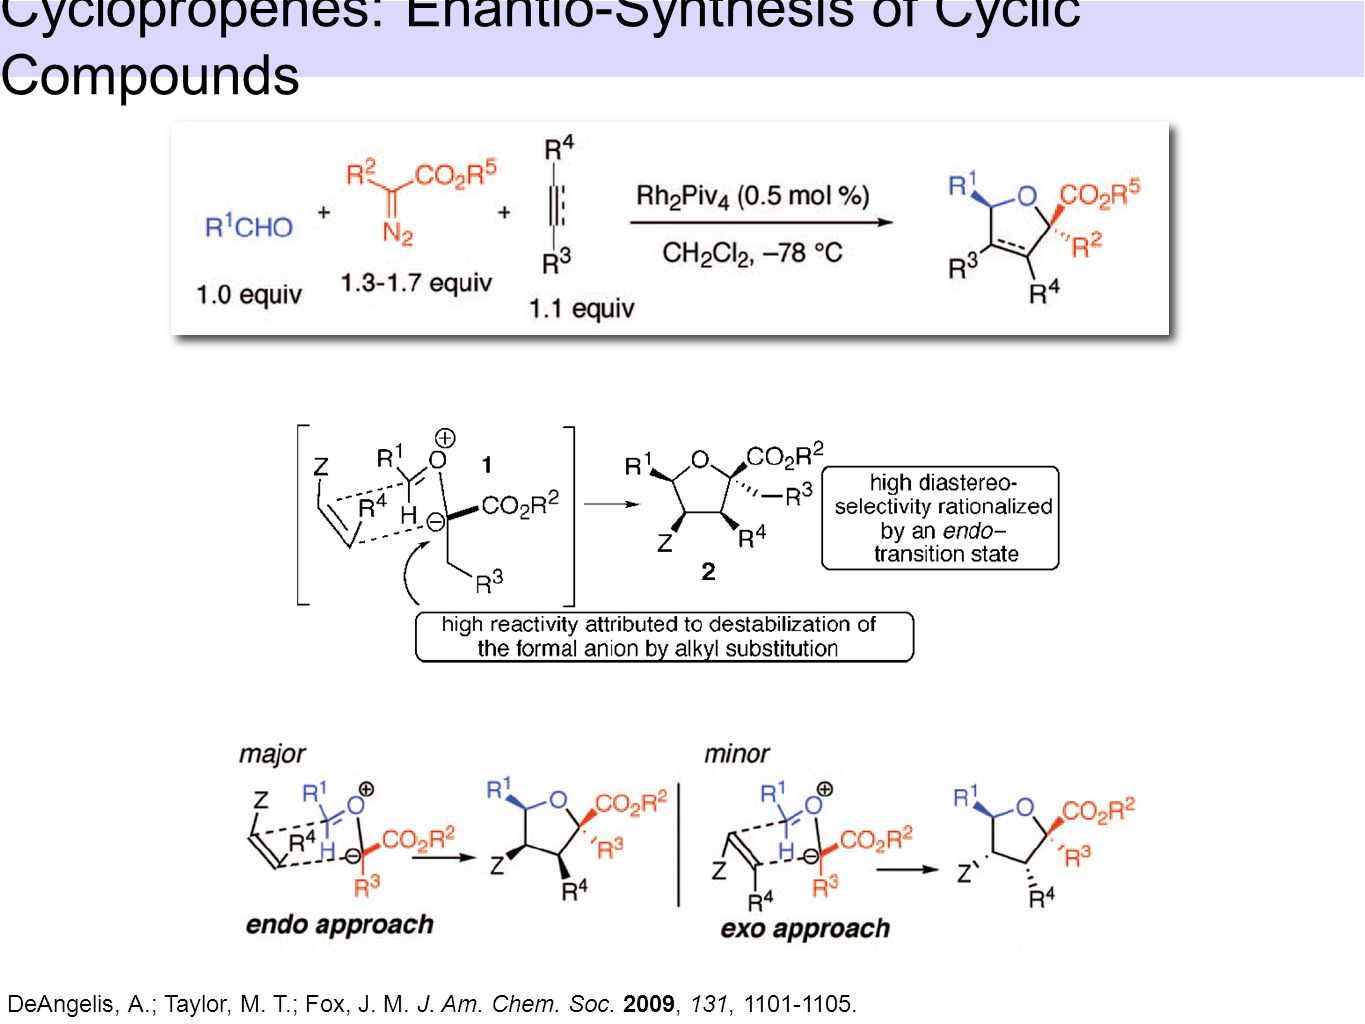 Cyclopropenes: Enantio-Synthesis of Cyclic Compounds DeAngelis, A.; Taylor, M.